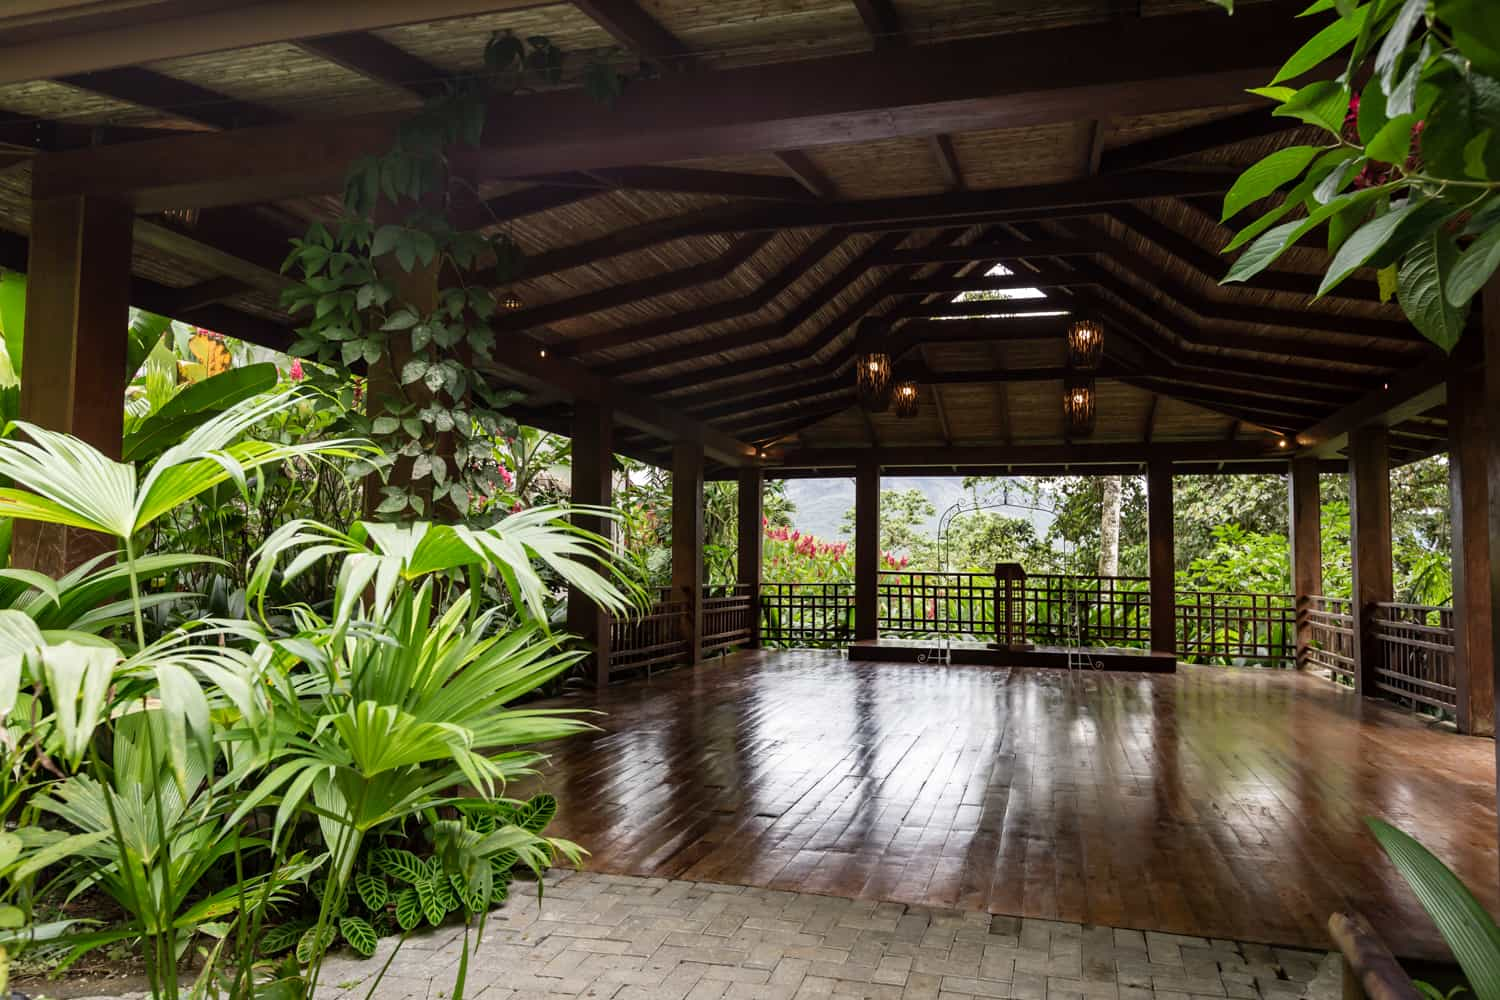 Photo of wood floors and ceiling in Pavilion for wedding receptions in Arenal.